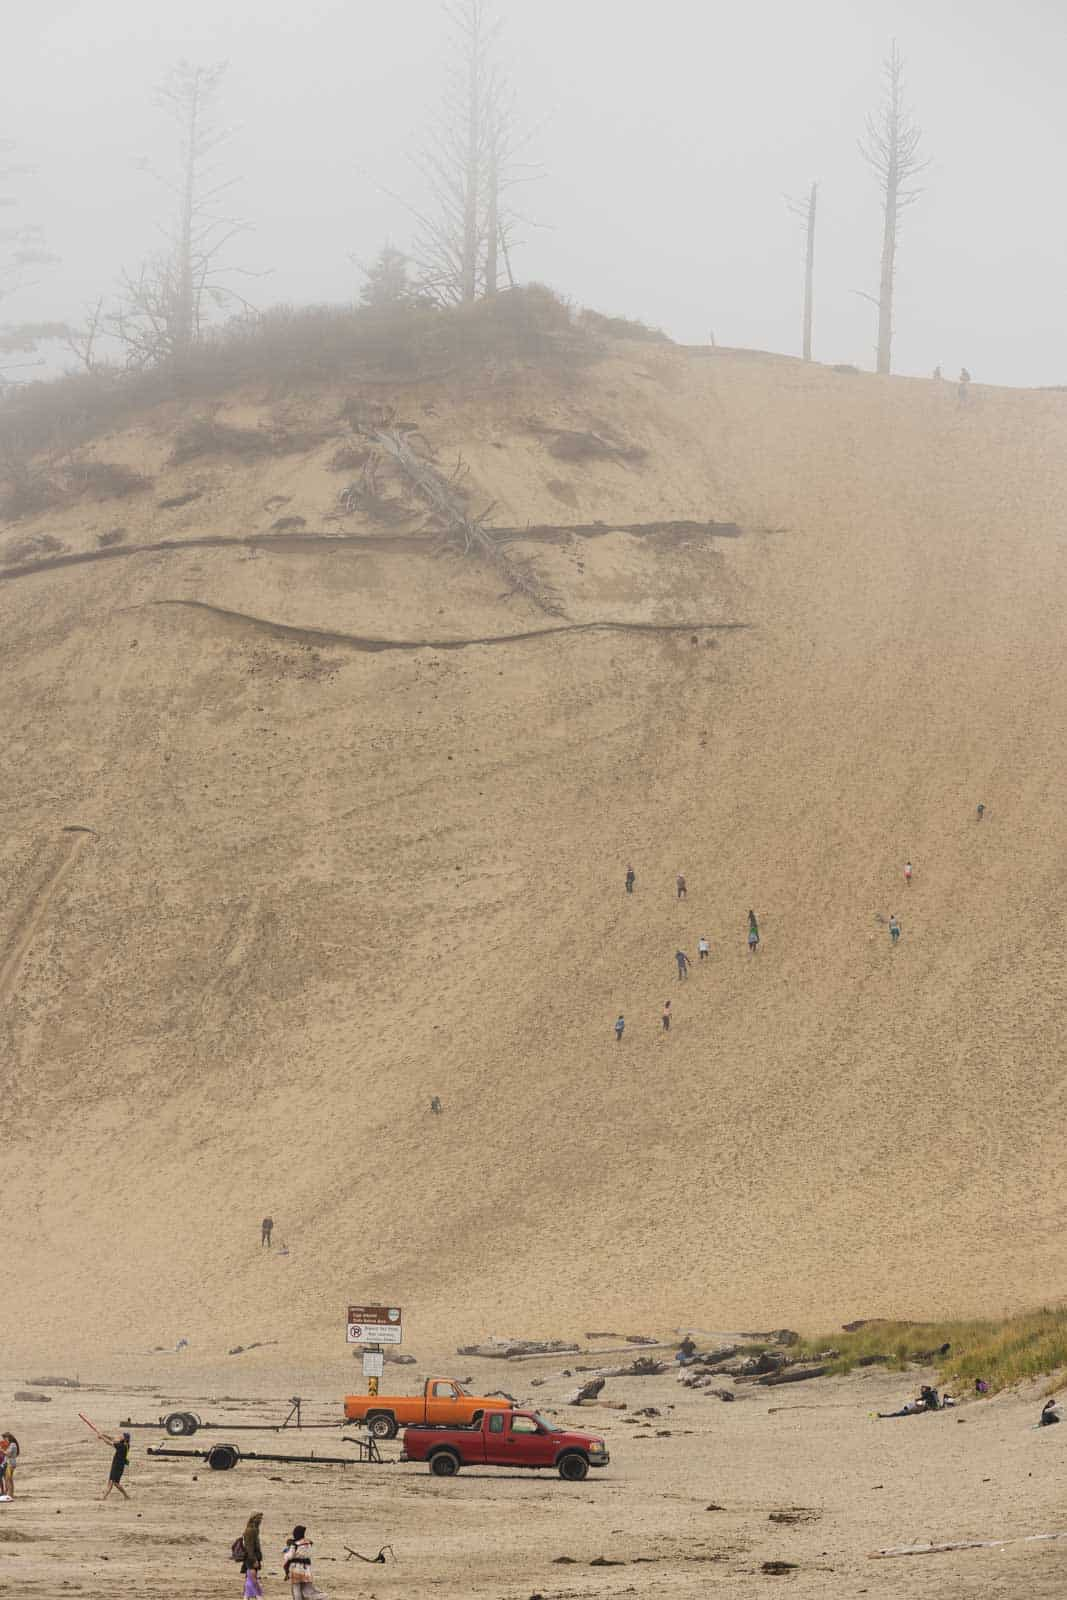 Giant sand dune in the fog with people climbing it at Cape Kiwanda